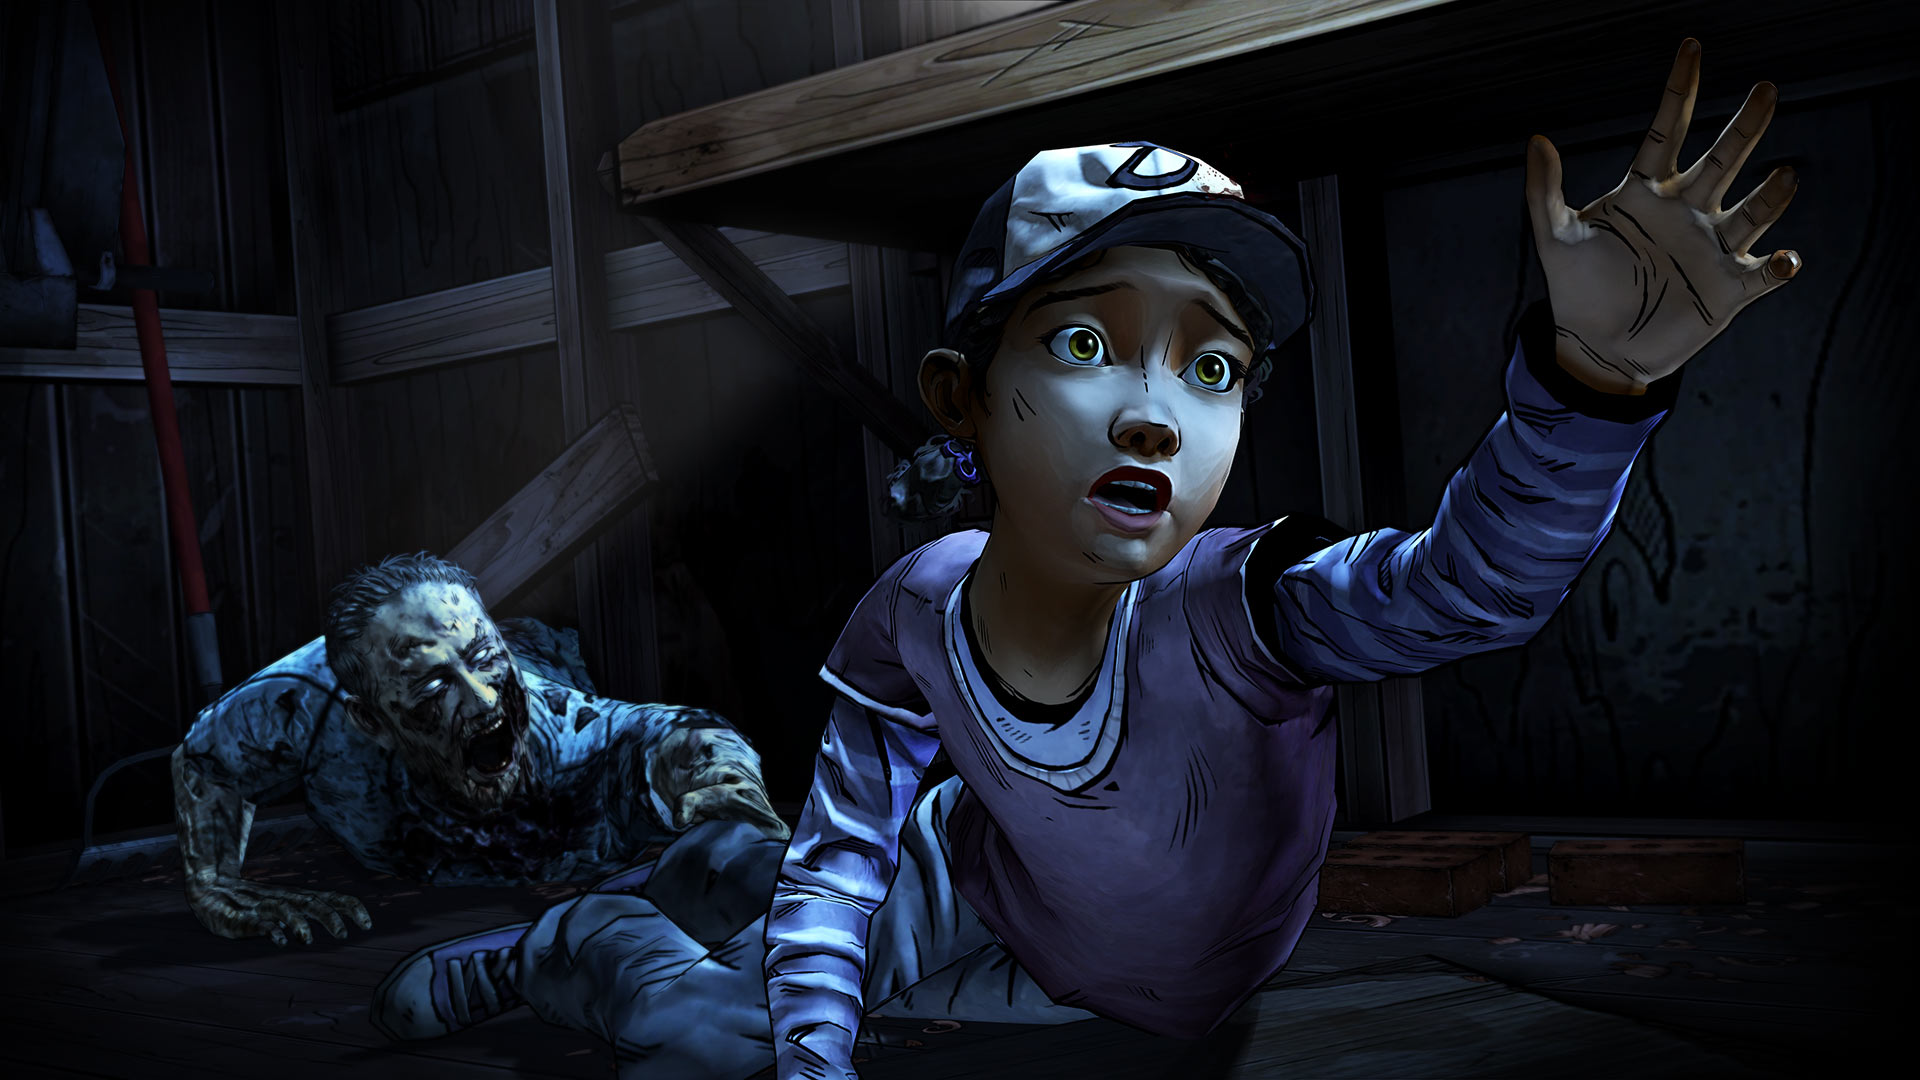 More Walking Dead And Other Skybound Games In The Works